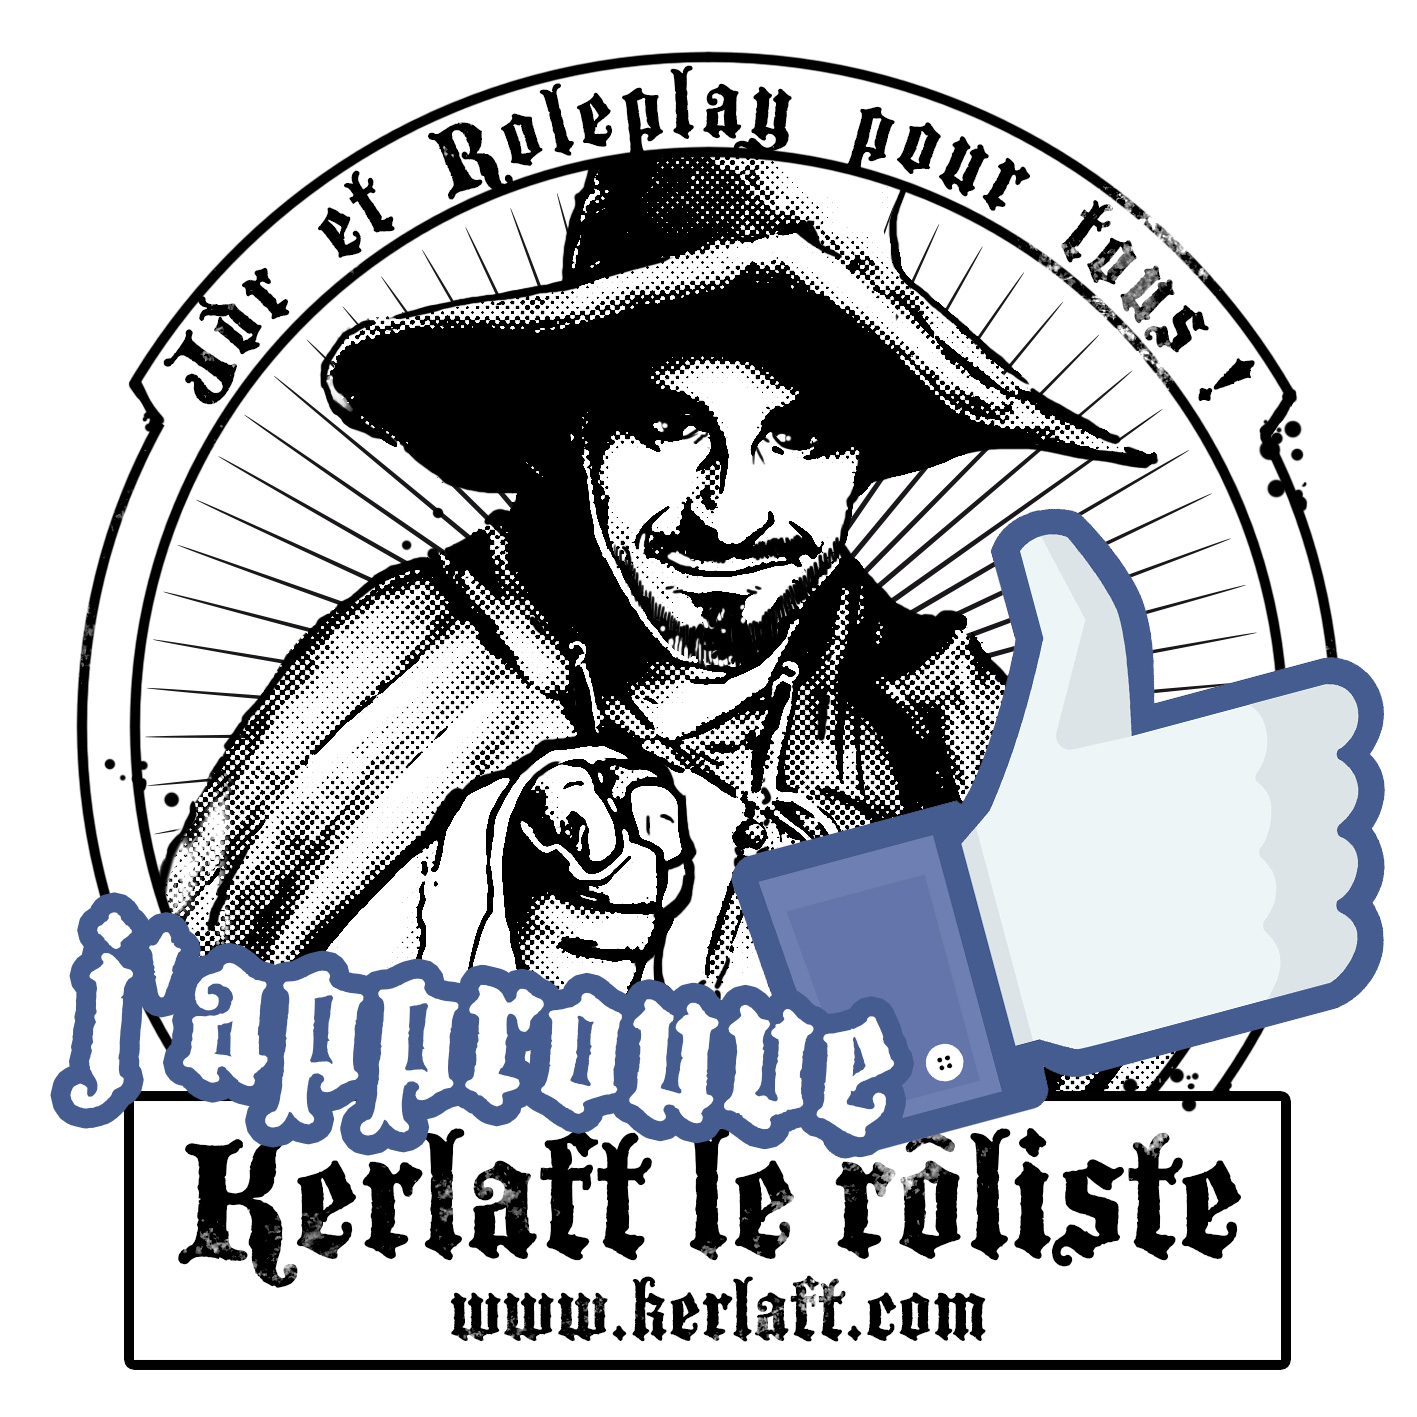 Kerlaft, rôliste since 1981, jdr et roleplay